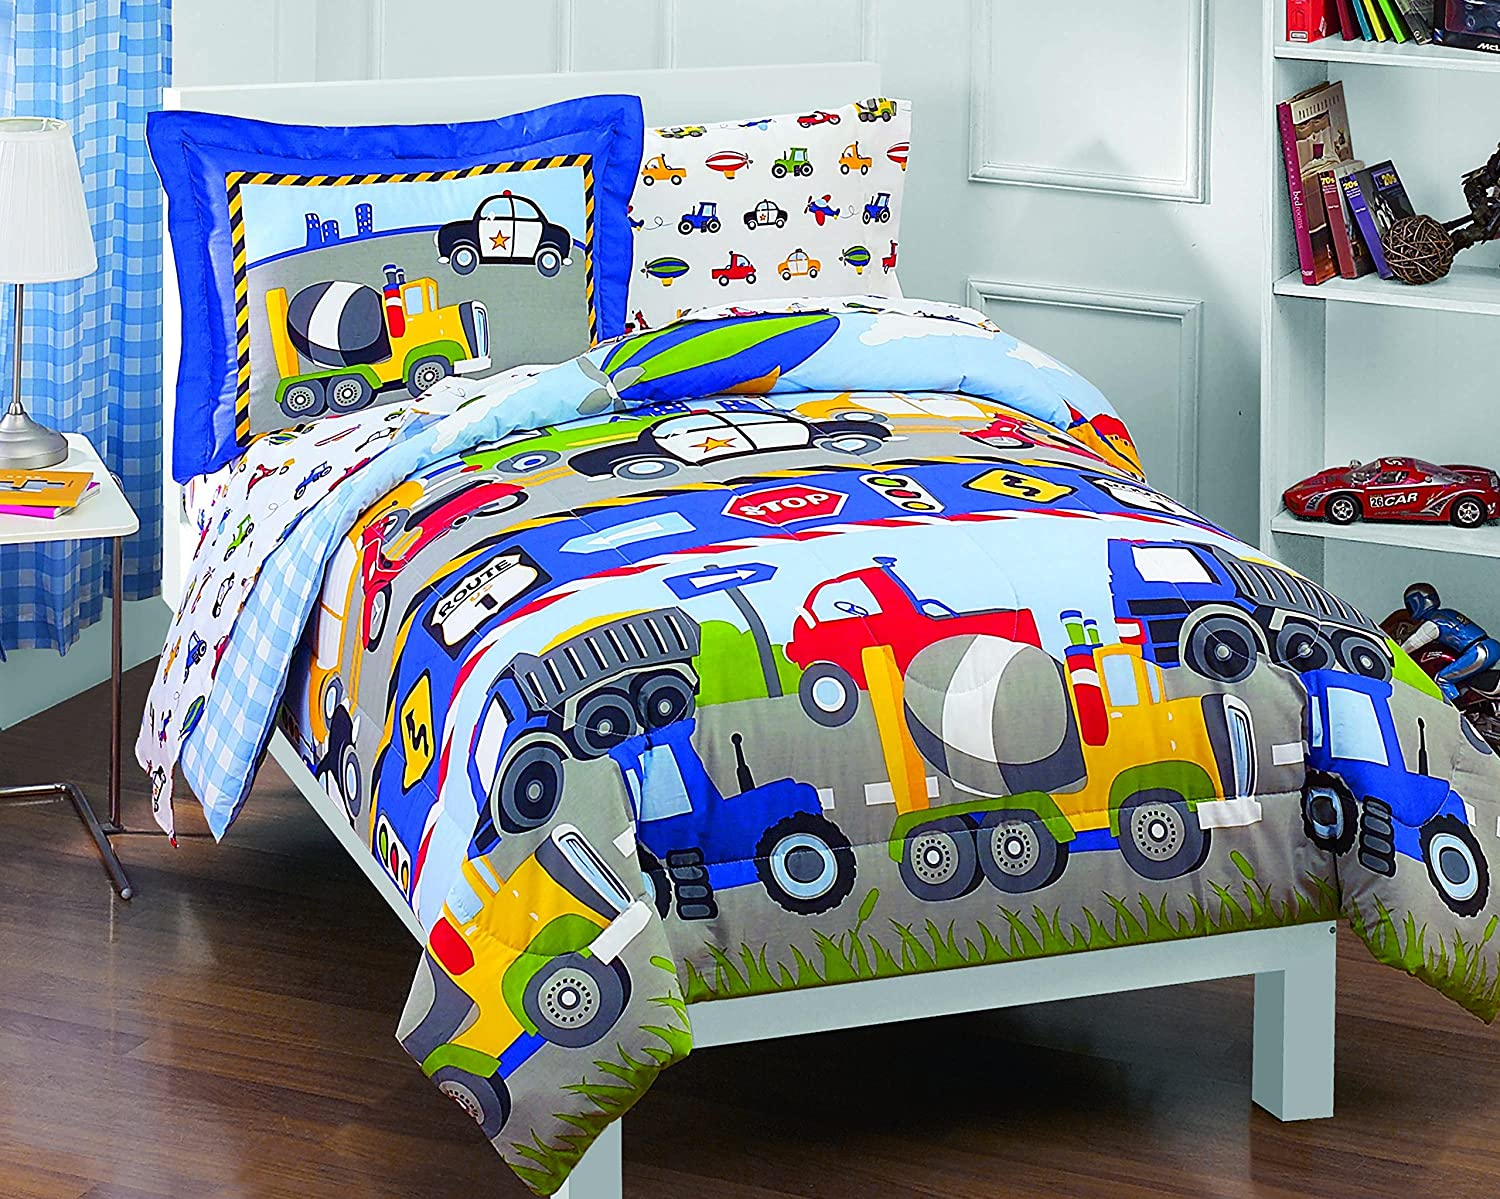 5-Piece Comforter Sheet Set, Blue Red, Twin